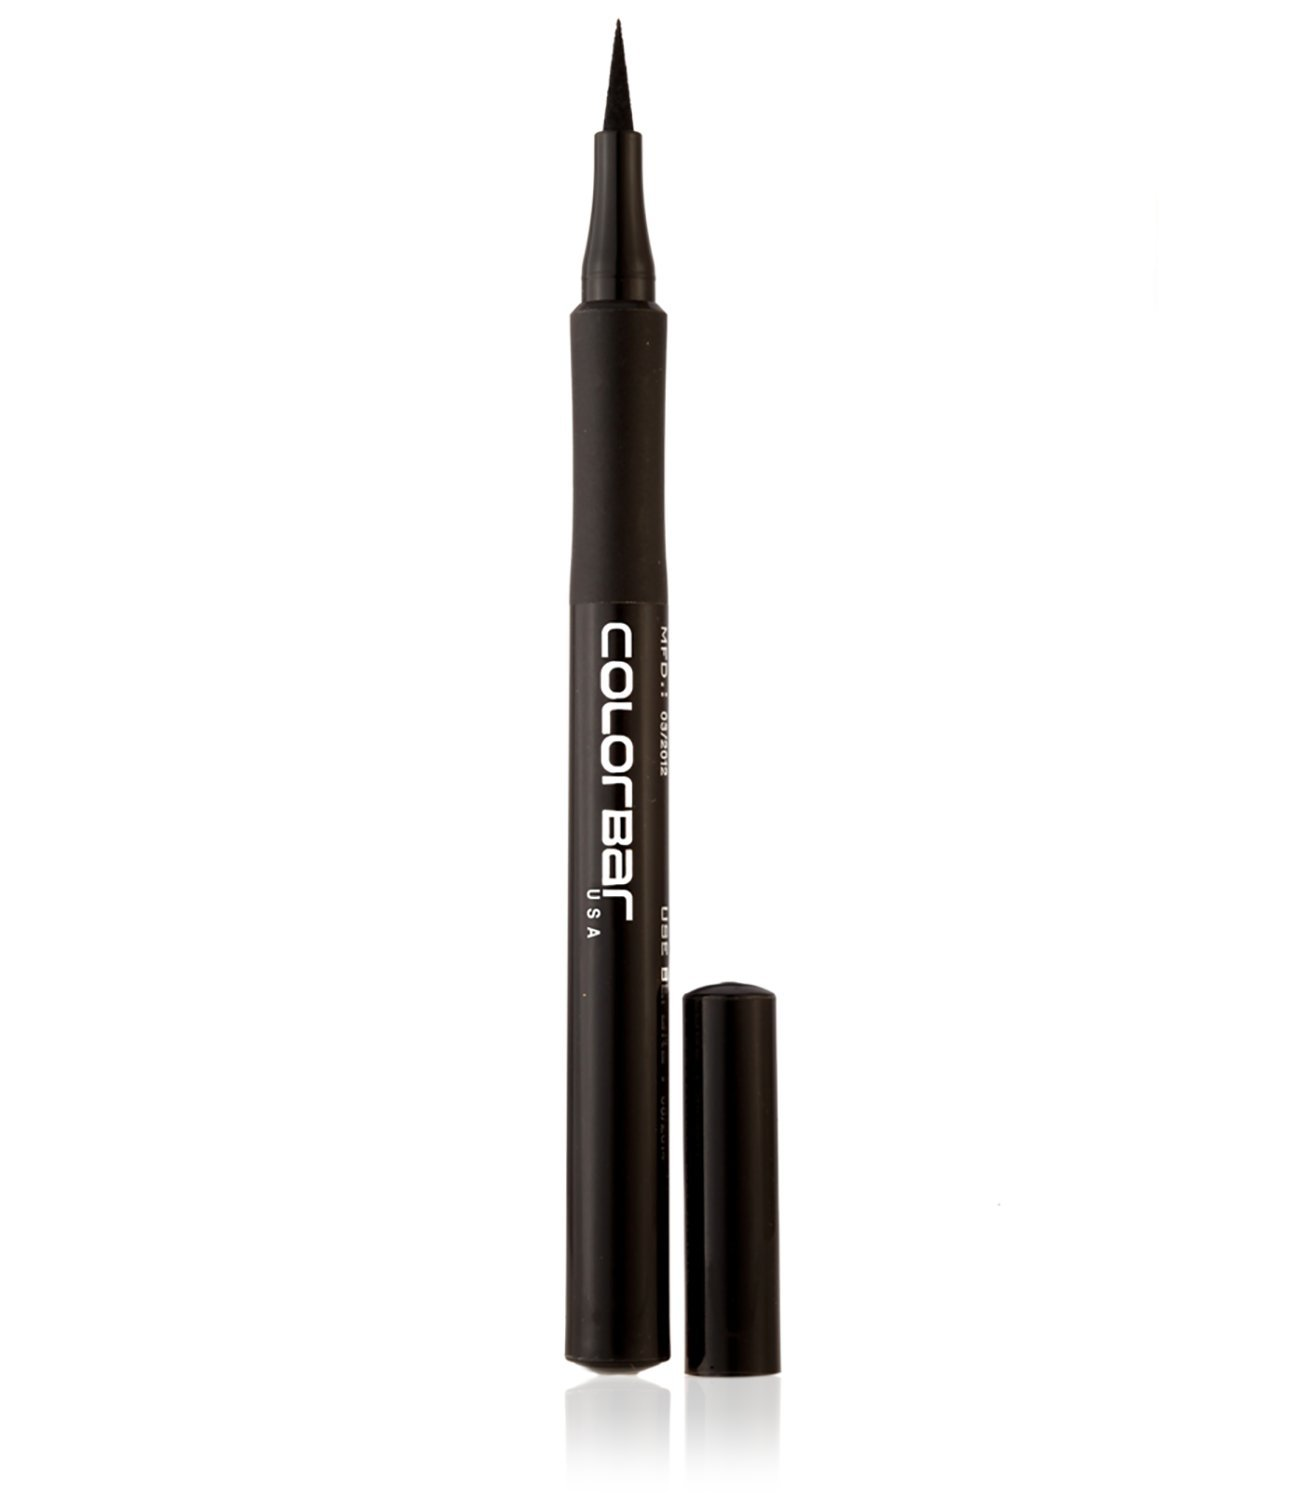 Eyeliners Store Buy Eyeliner Products Online Browse Huge List Of Maybelline Hyper Sharp Wing Colorbar Ultimate Eye Liner Black 1ml